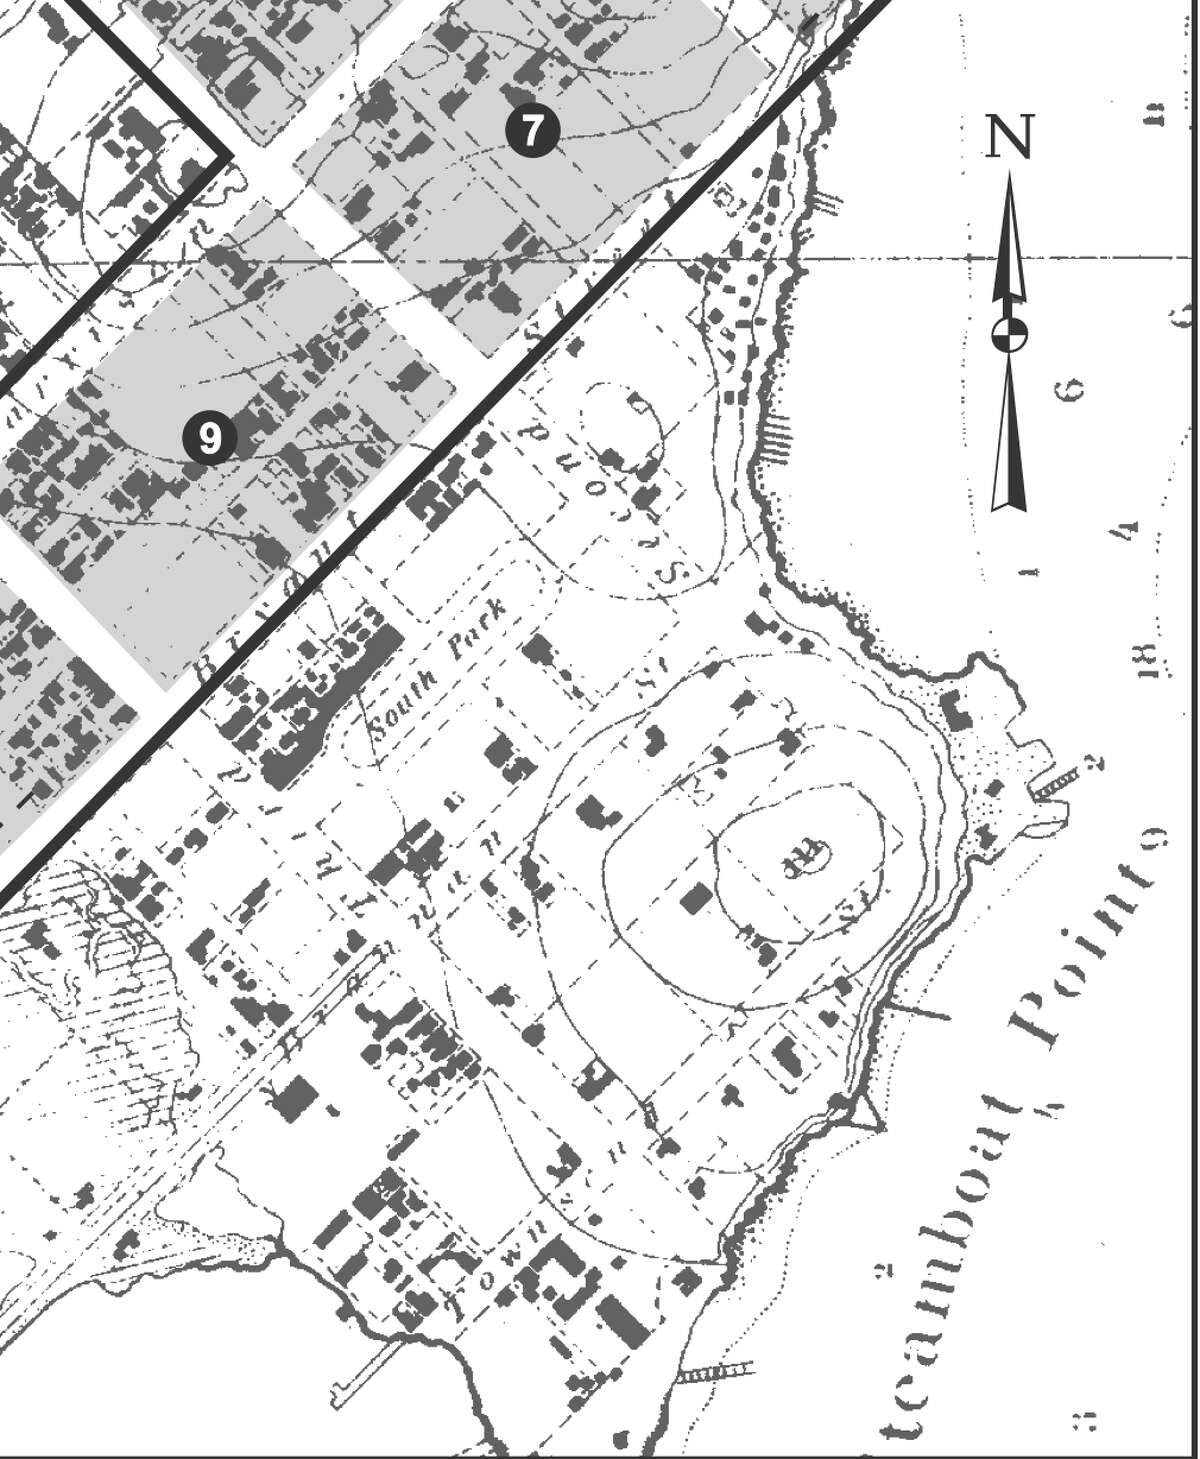 This historic map shows the South End as it originally functioned: the SF commercial waterfront.